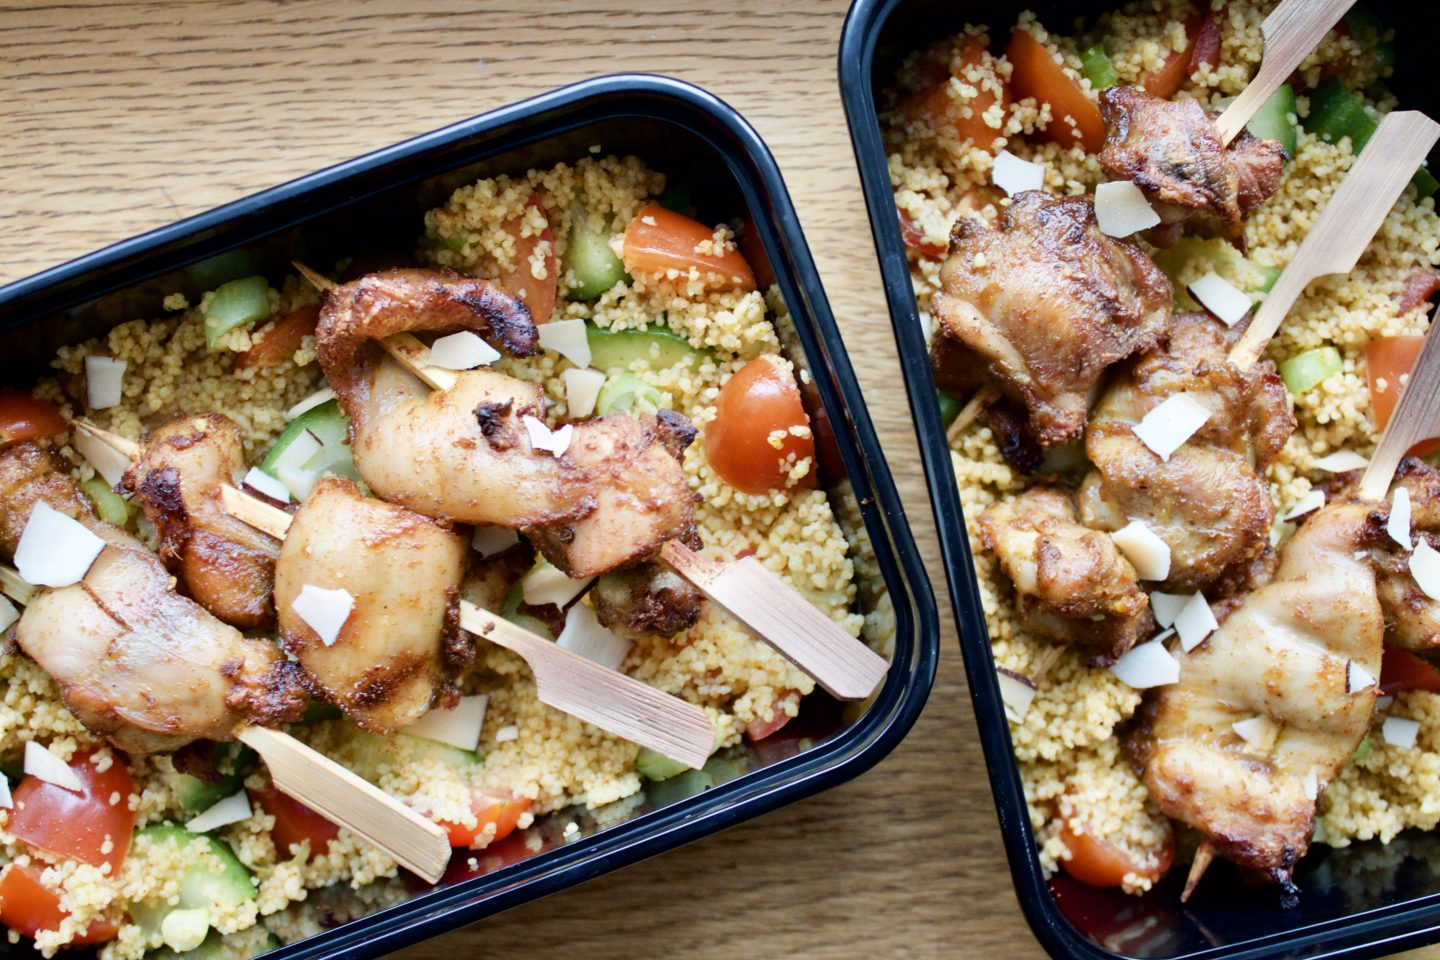 SUYA & KPAKPOSHITO CHICKEN SKEWERS WITH A SMOKY PAPRIKA COUSCOUS SALAD | PACKED LUNCH